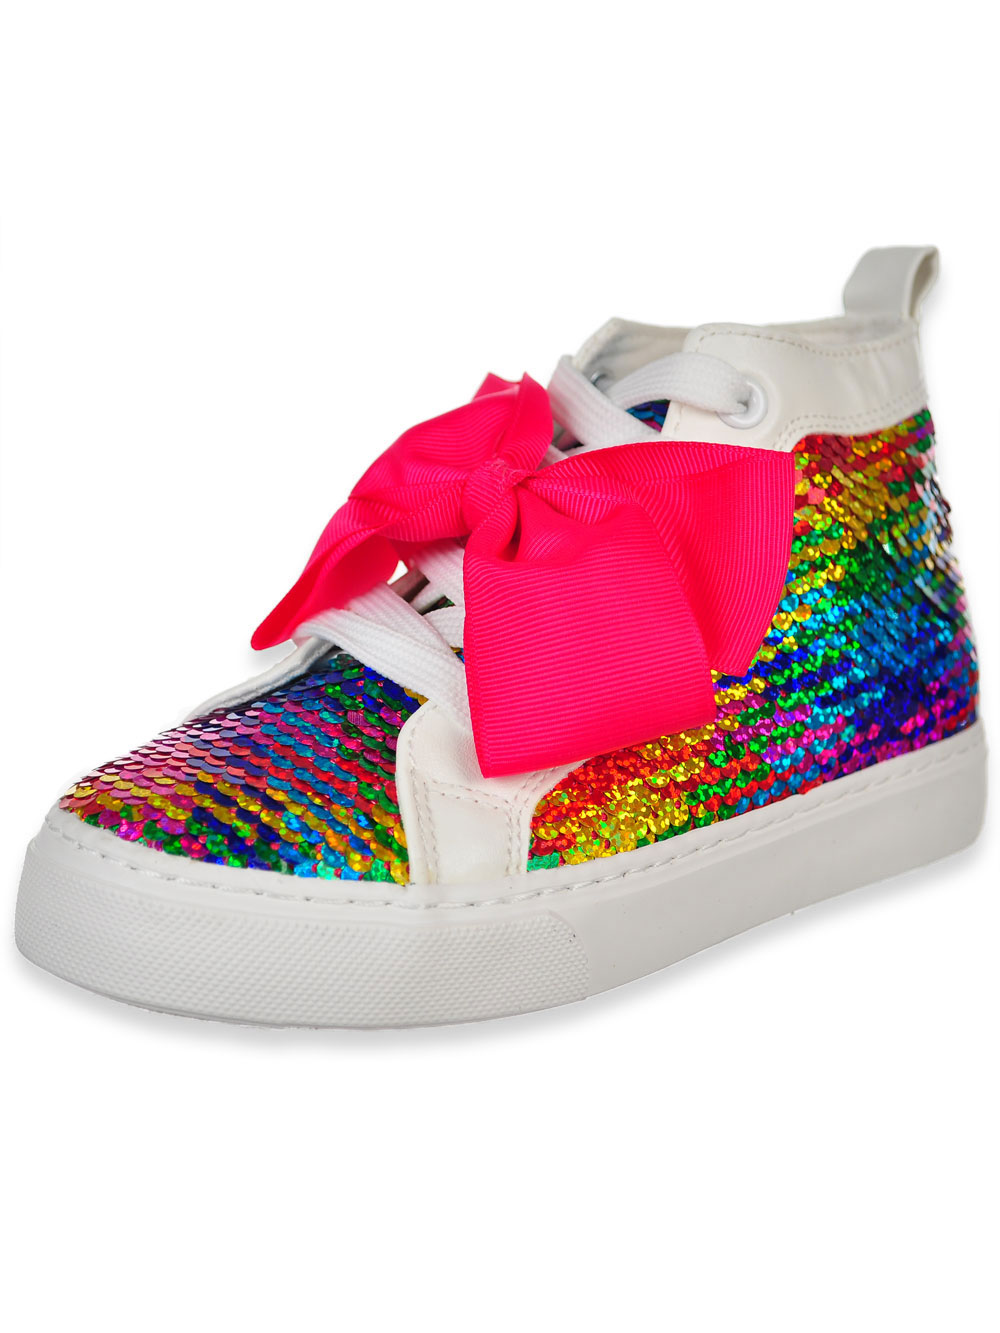 Girls Hi Top Sneakers By Jojo Siwa In Red Multi From Cookie S Kids